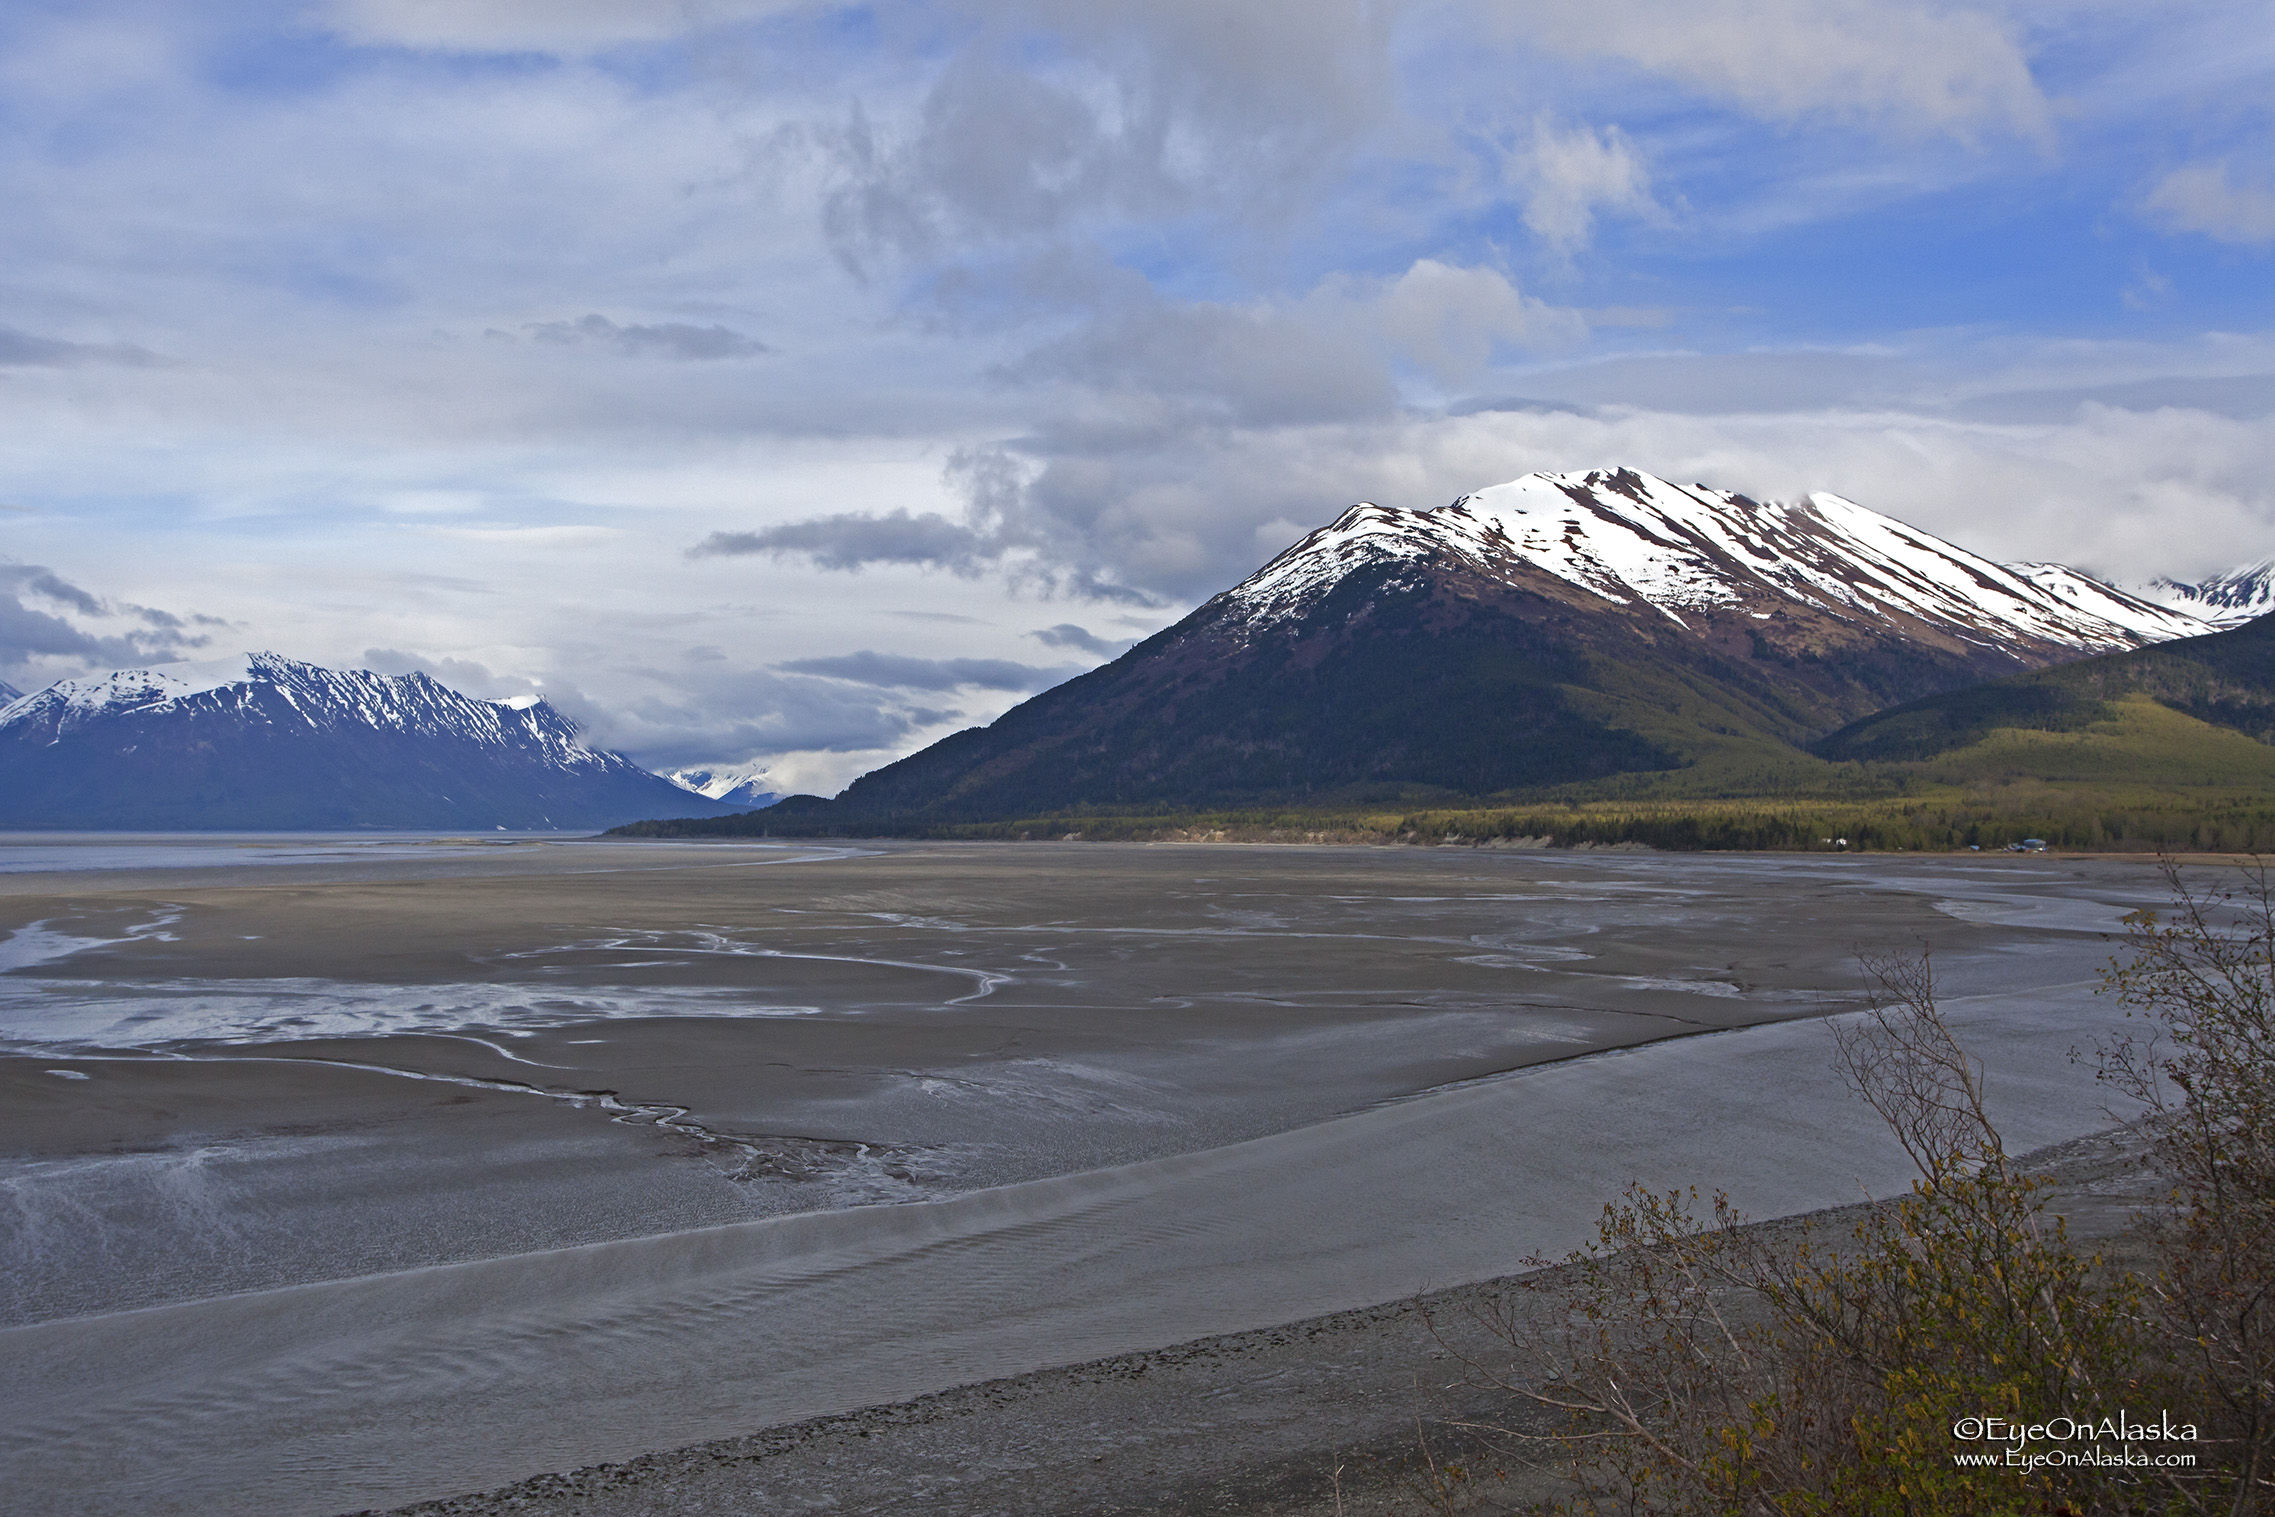 The view towards the end of Turnagain Arm from our campsite at Hope.